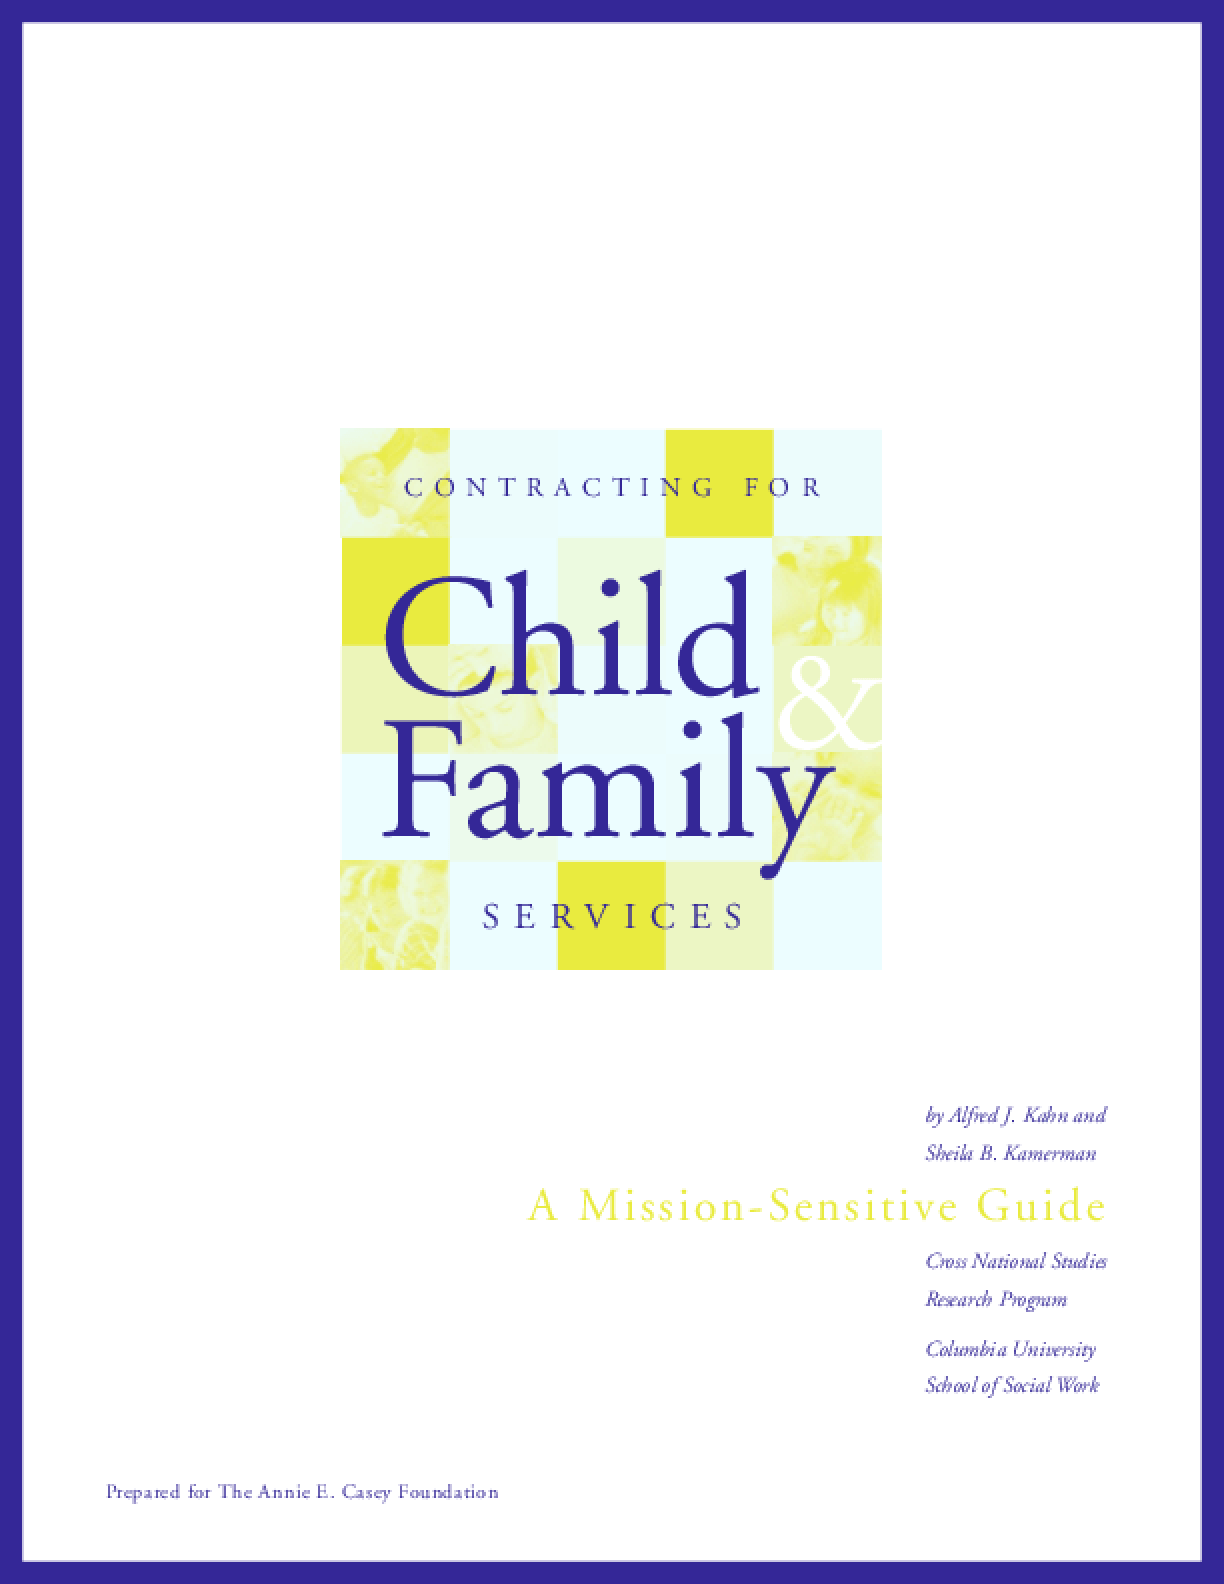 Contracting for Child and Family Services: A Mission-Sensitive Guide